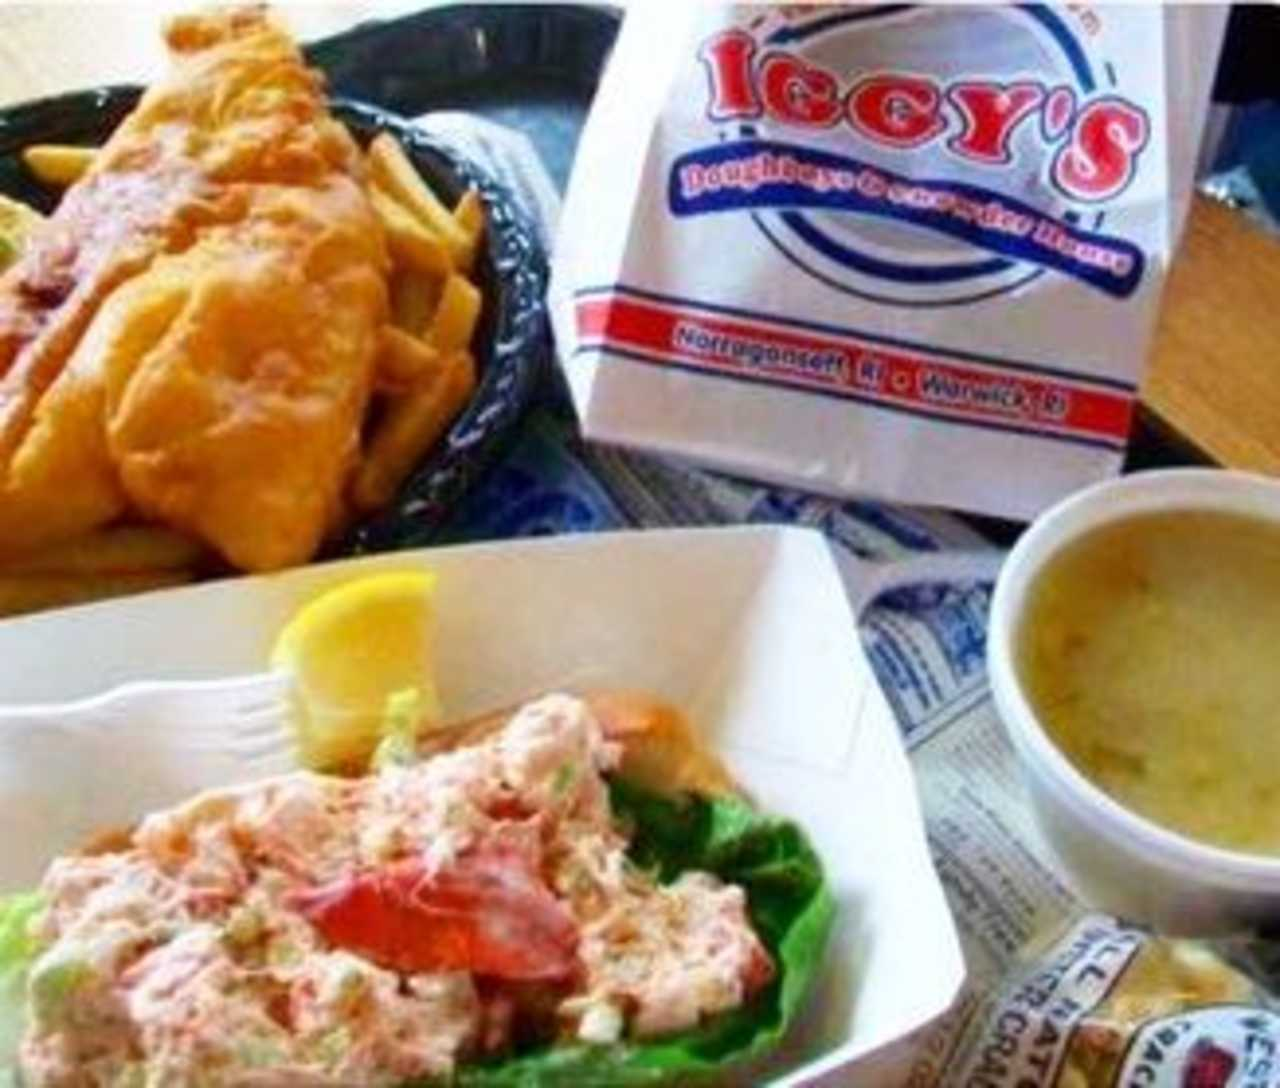 Iggy's Doughboys & Chowder House - Manufacturing - Seafood in Warwick RI